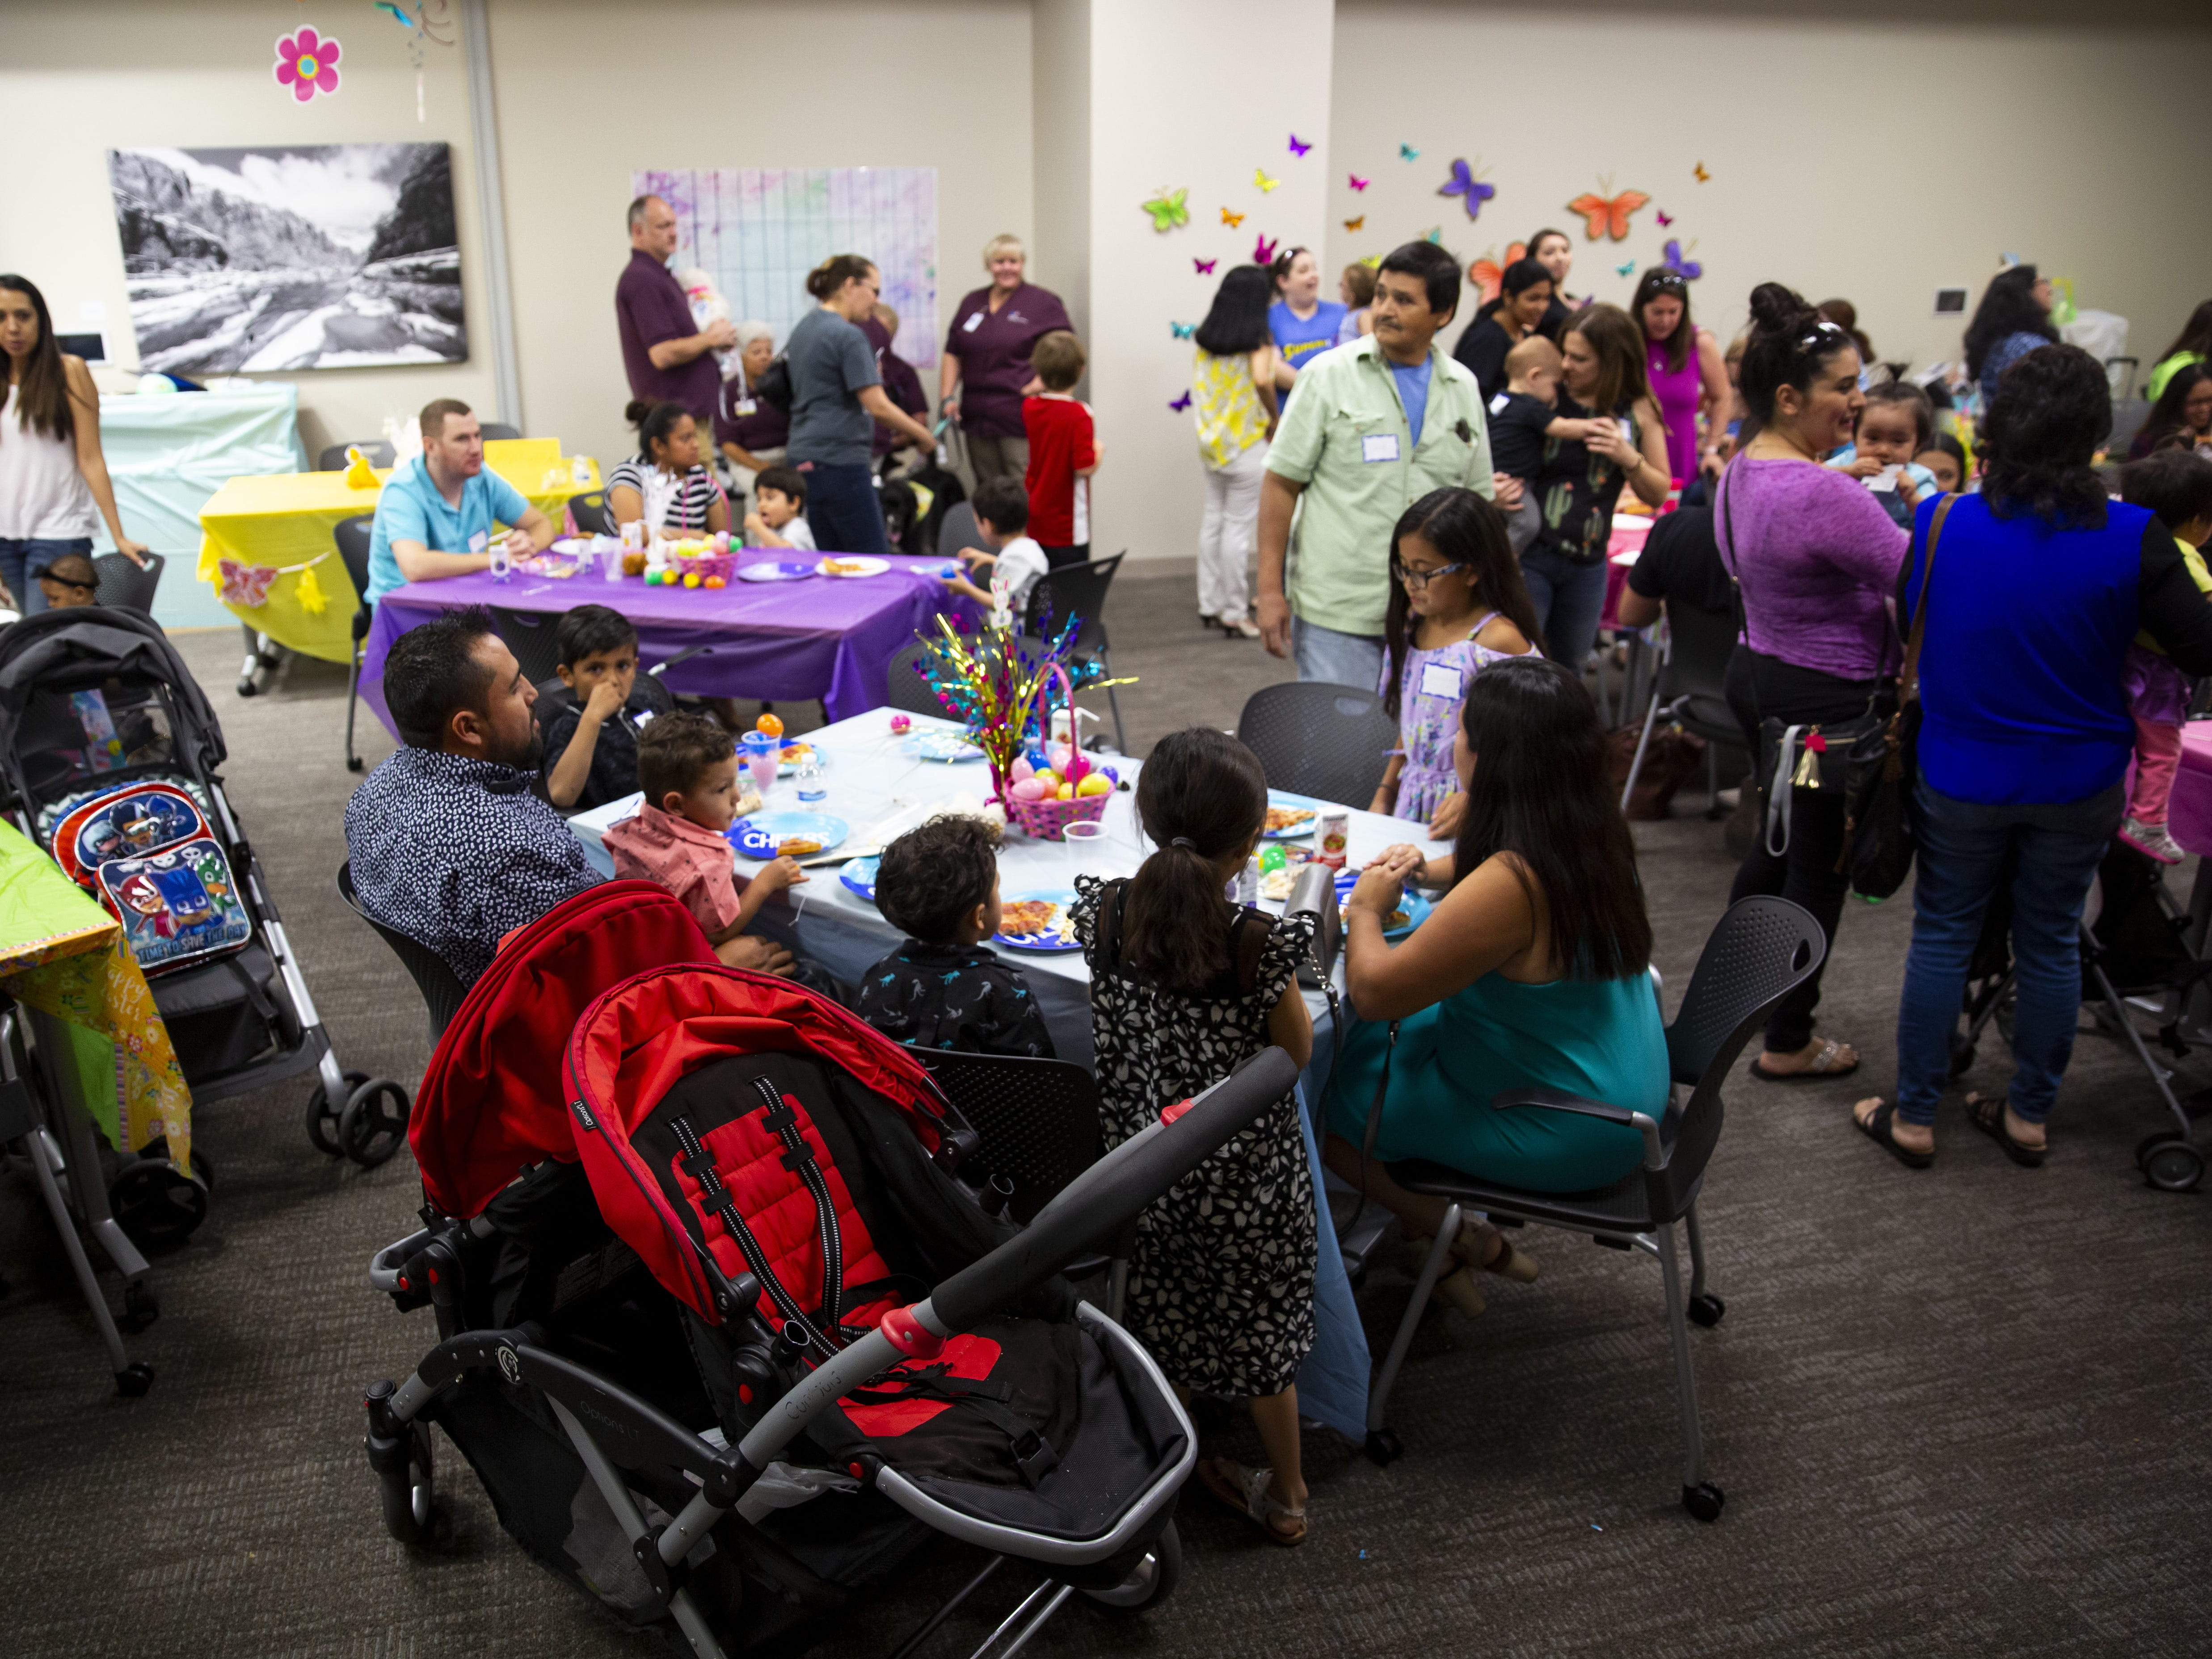 Families eat pizza and snacks at the Preemie NICU Reunion at Banner University Medical Center on April 13, 2019.